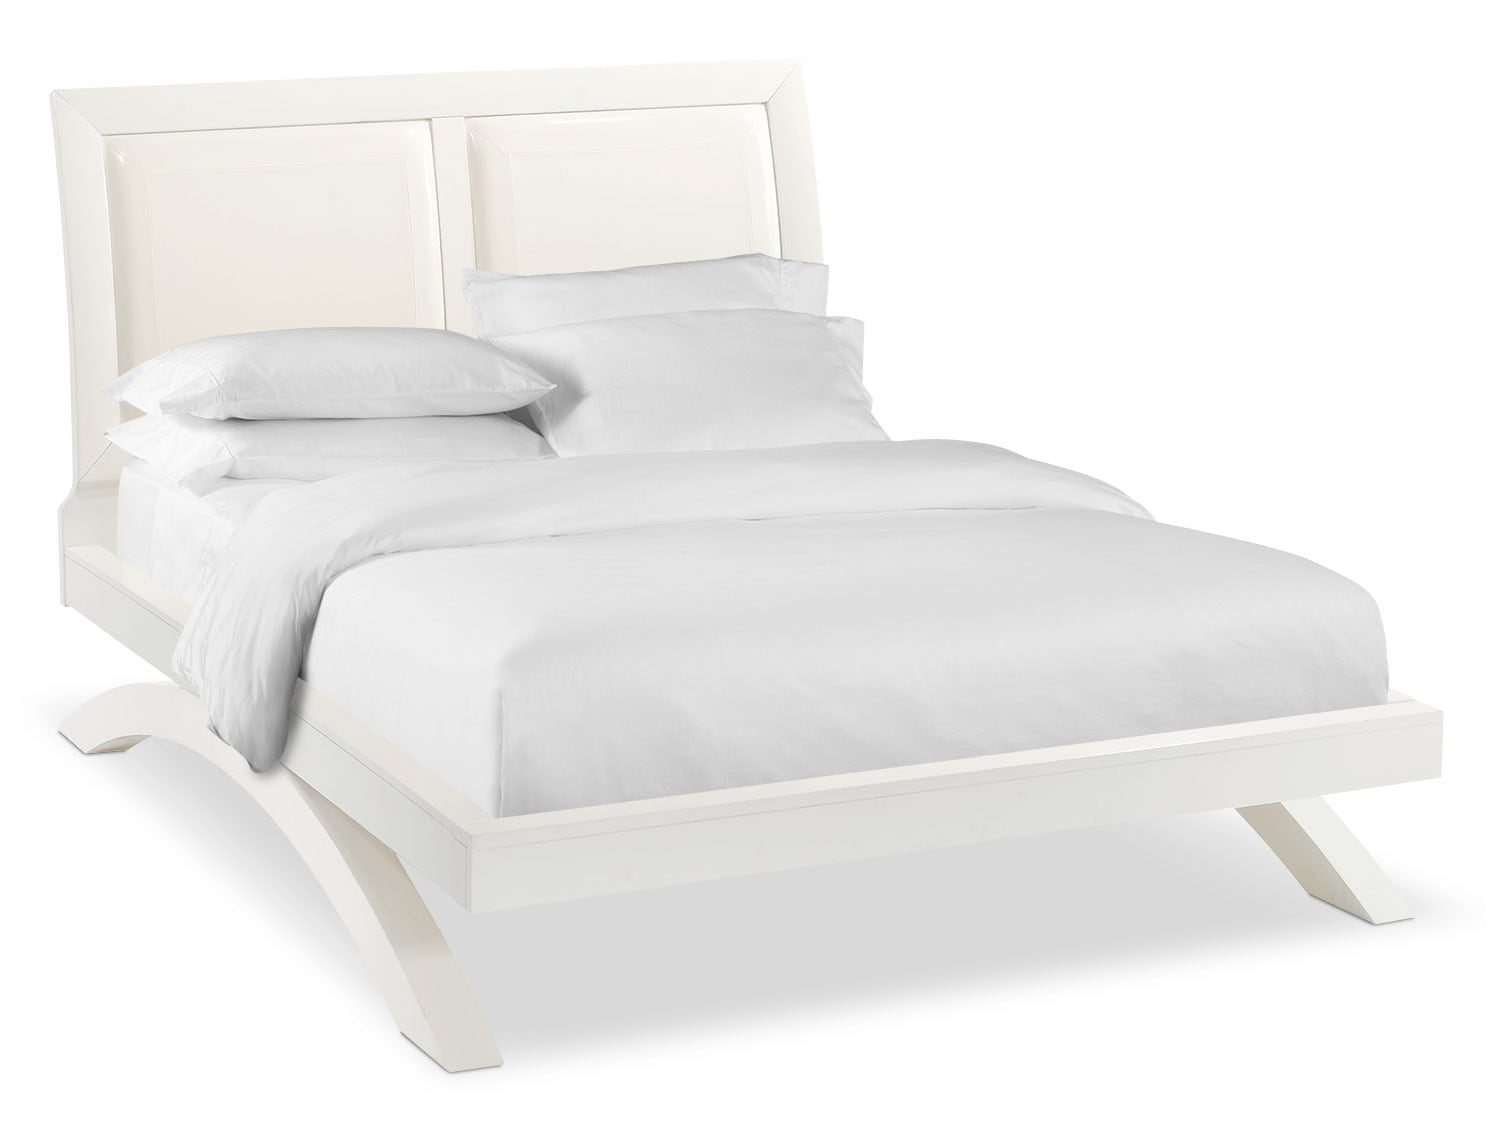 Jaden King Upholstered Arch Bed - White